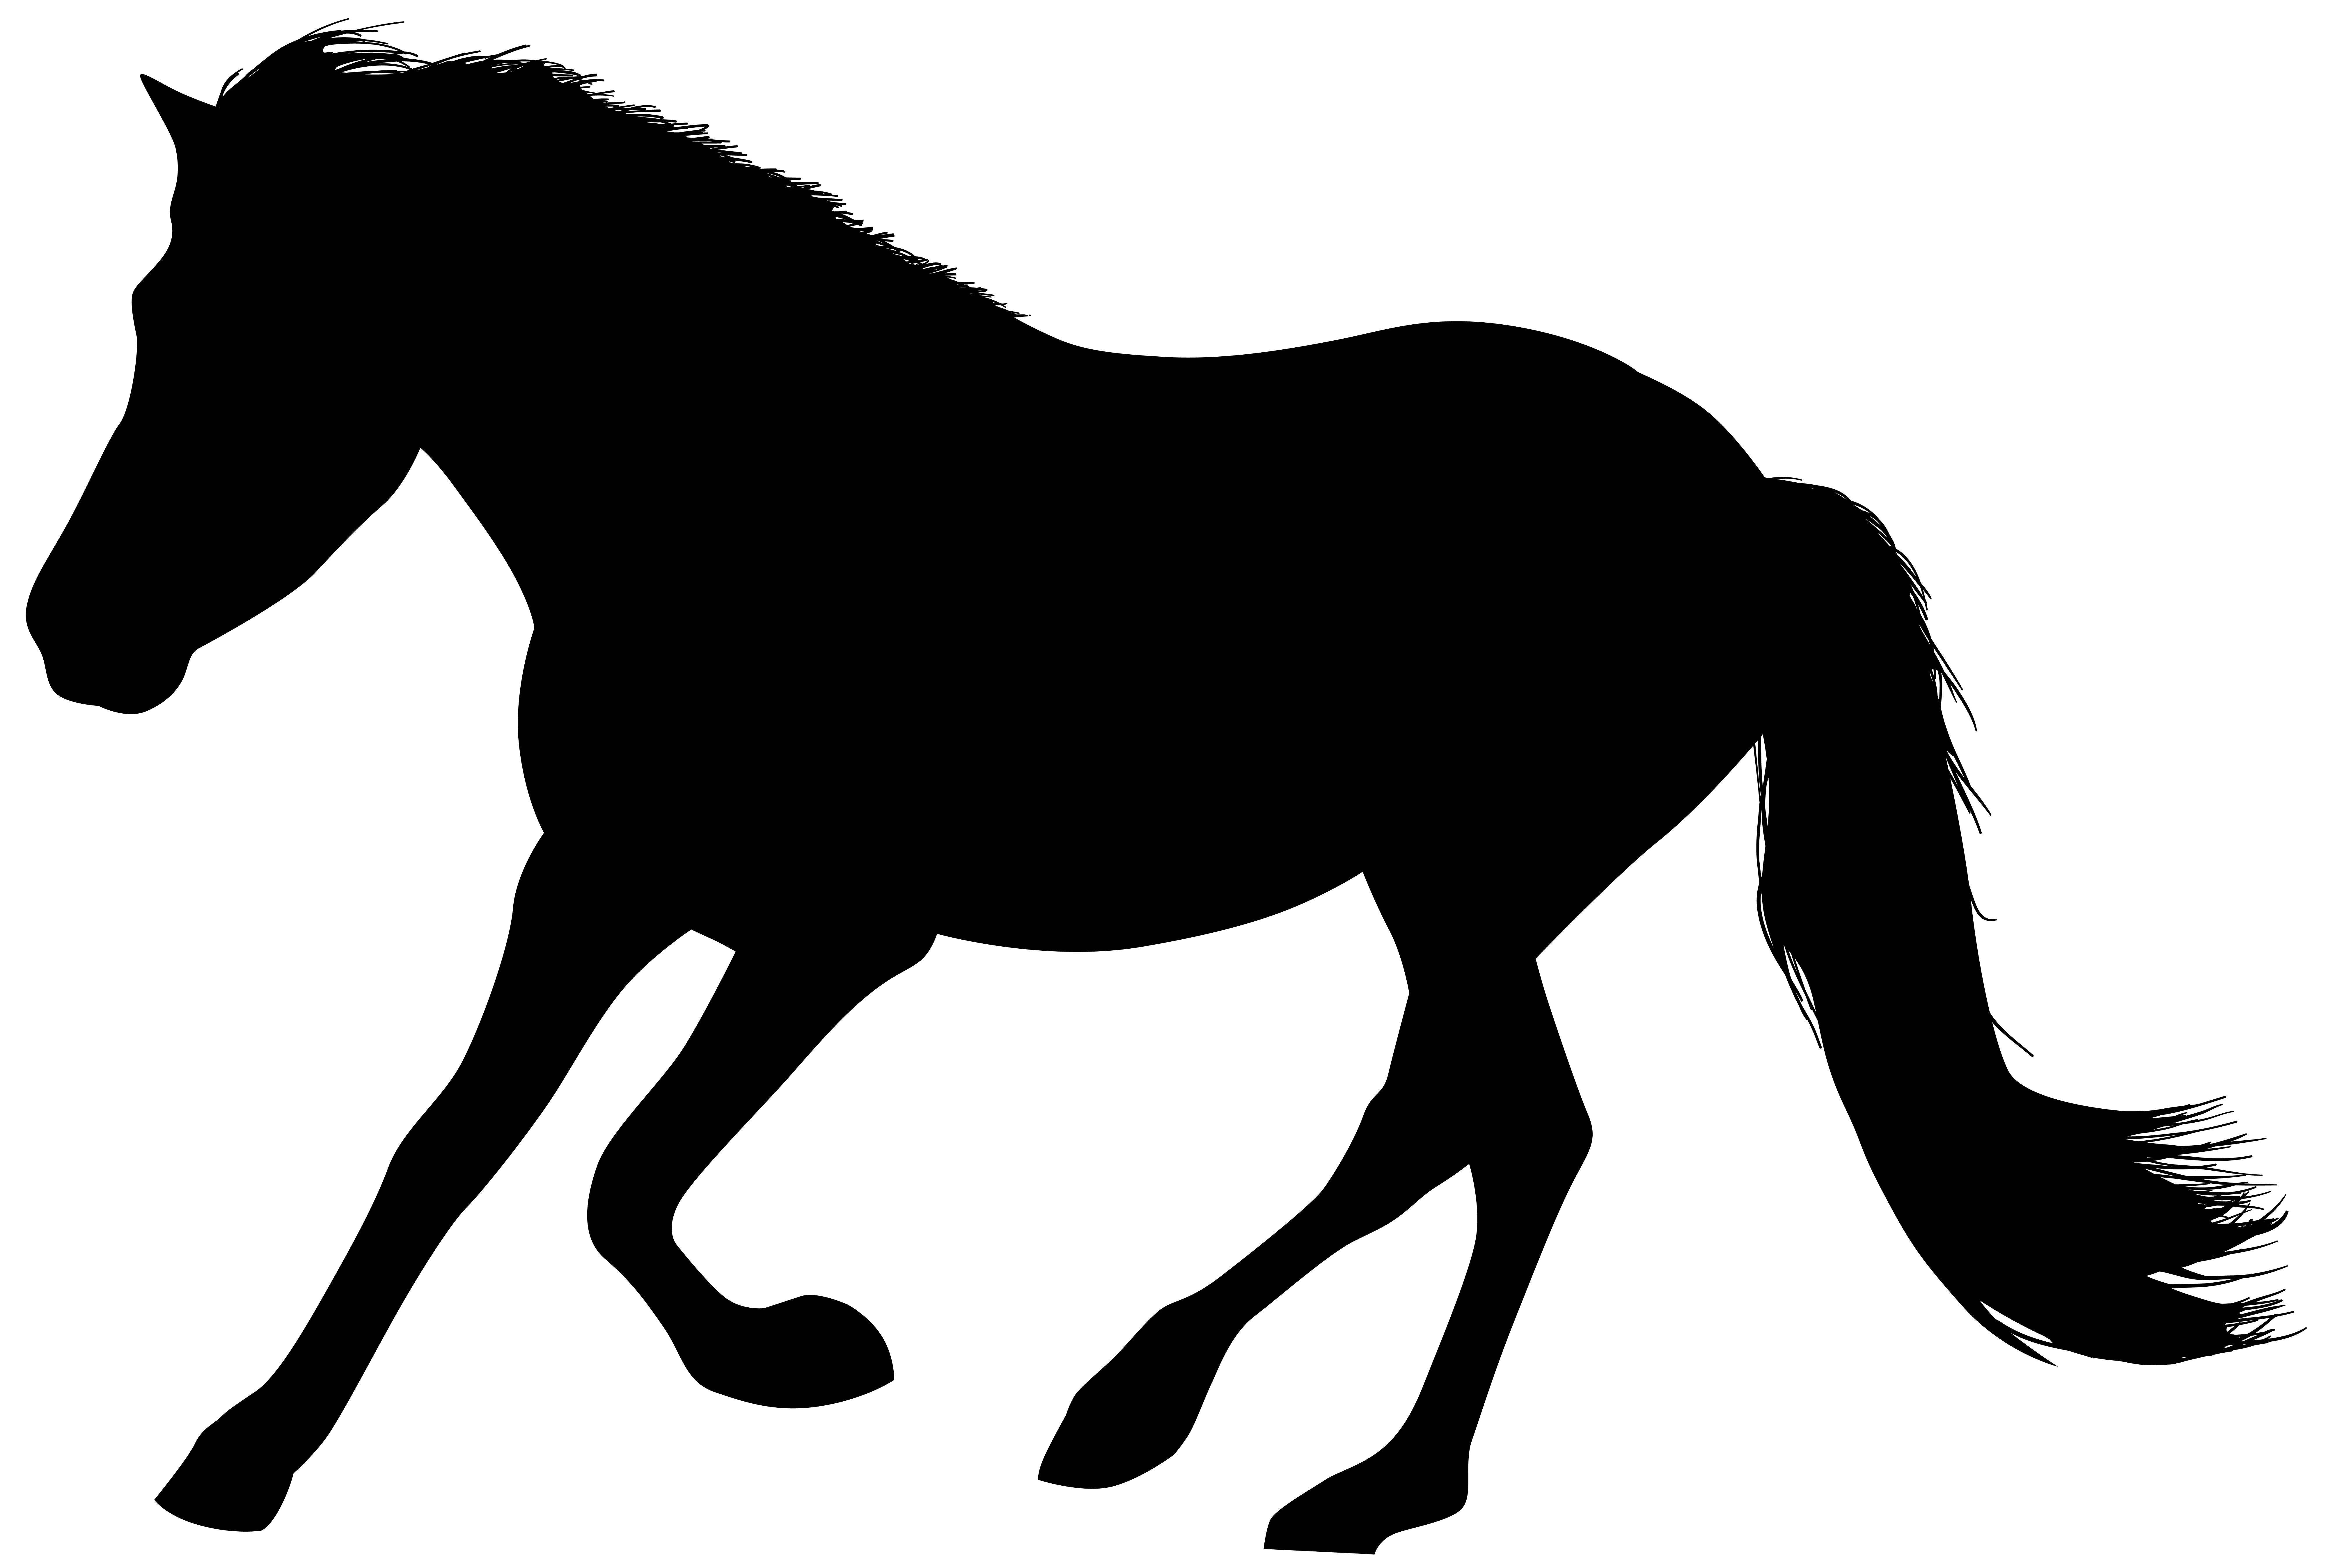 Running Horse Silhouette Clip Art Image.